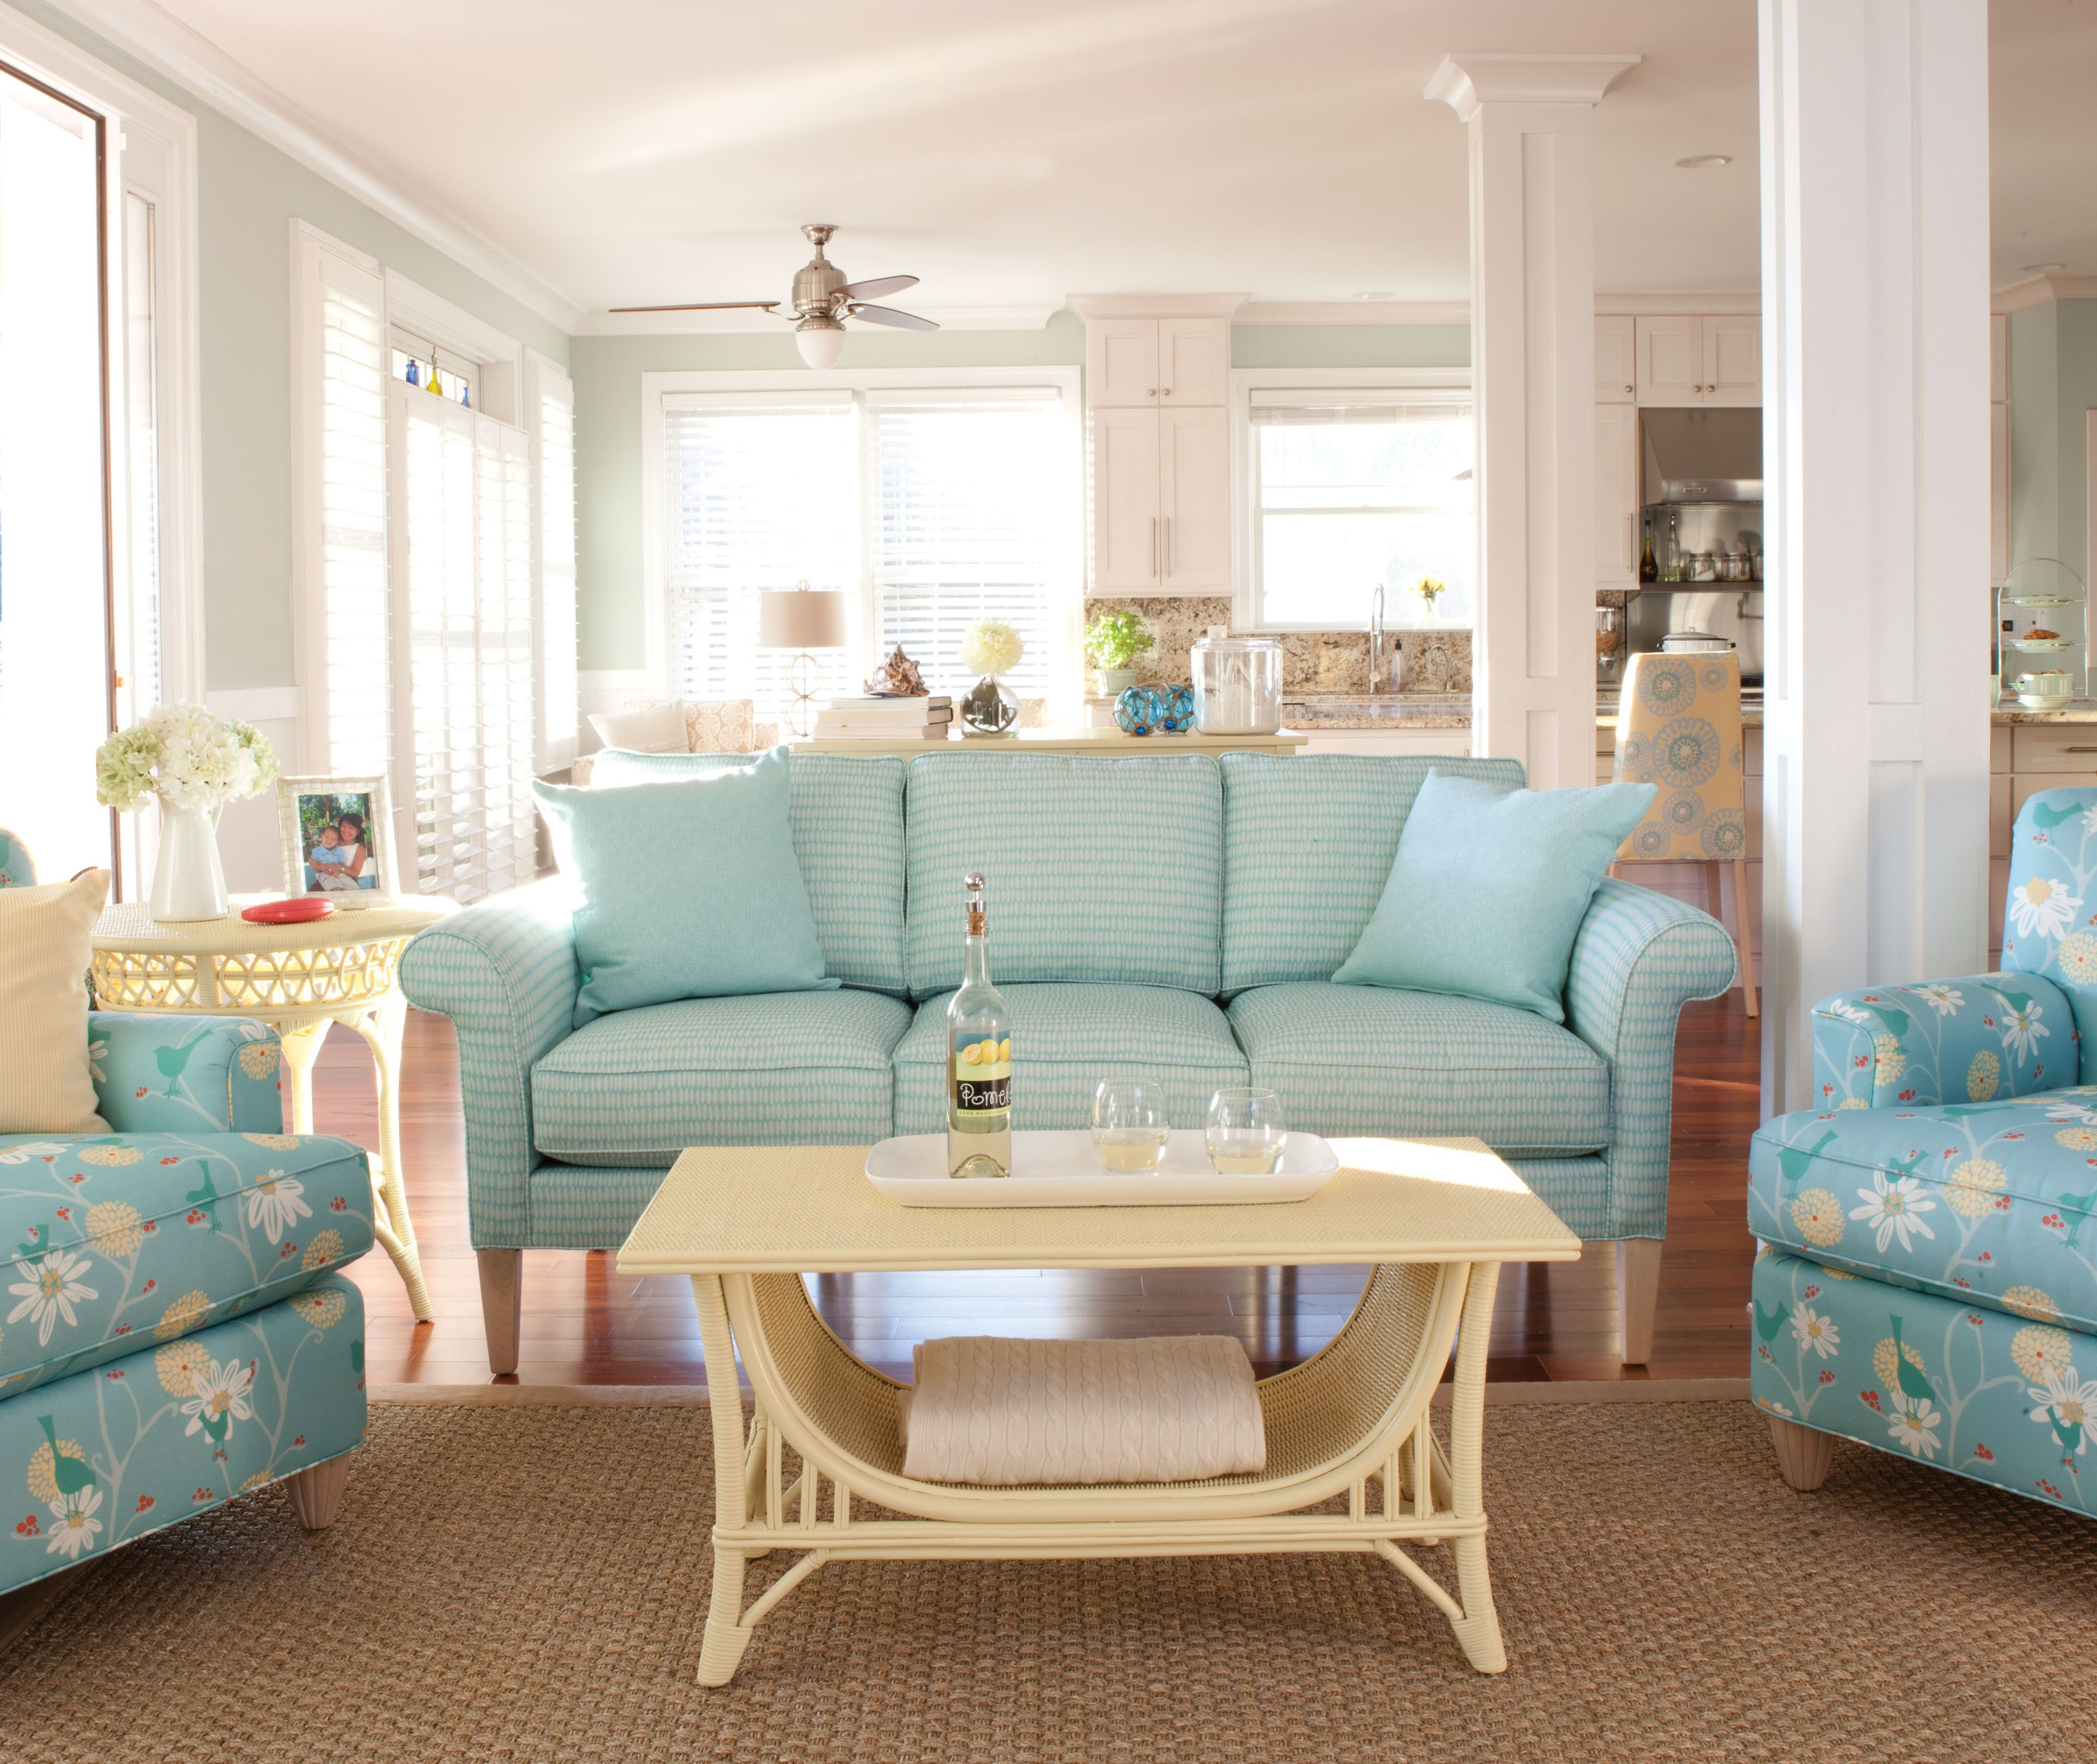 coastal design furniture. Mix And Match Patterns In Your Interior - Upholstered On Furniture, Like Sofas, Loveseats Coastal Design Furniture L